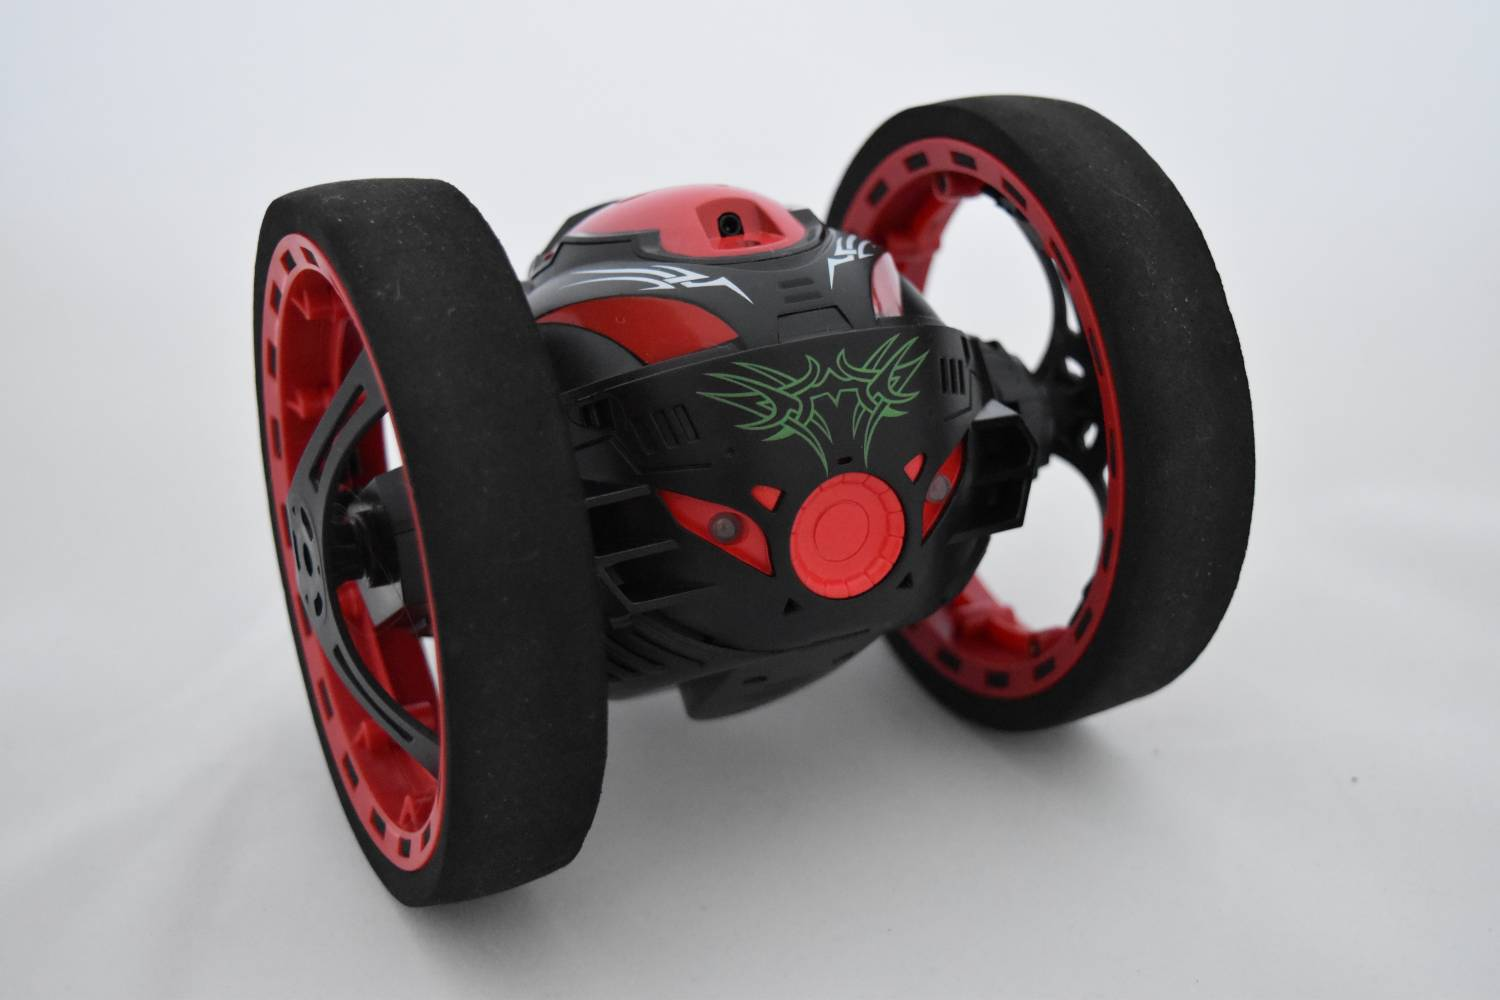 GearBest: Рaдиoупрaвляeмый рoбoт PEG SJ88 2.4GHz RC Bounce Car